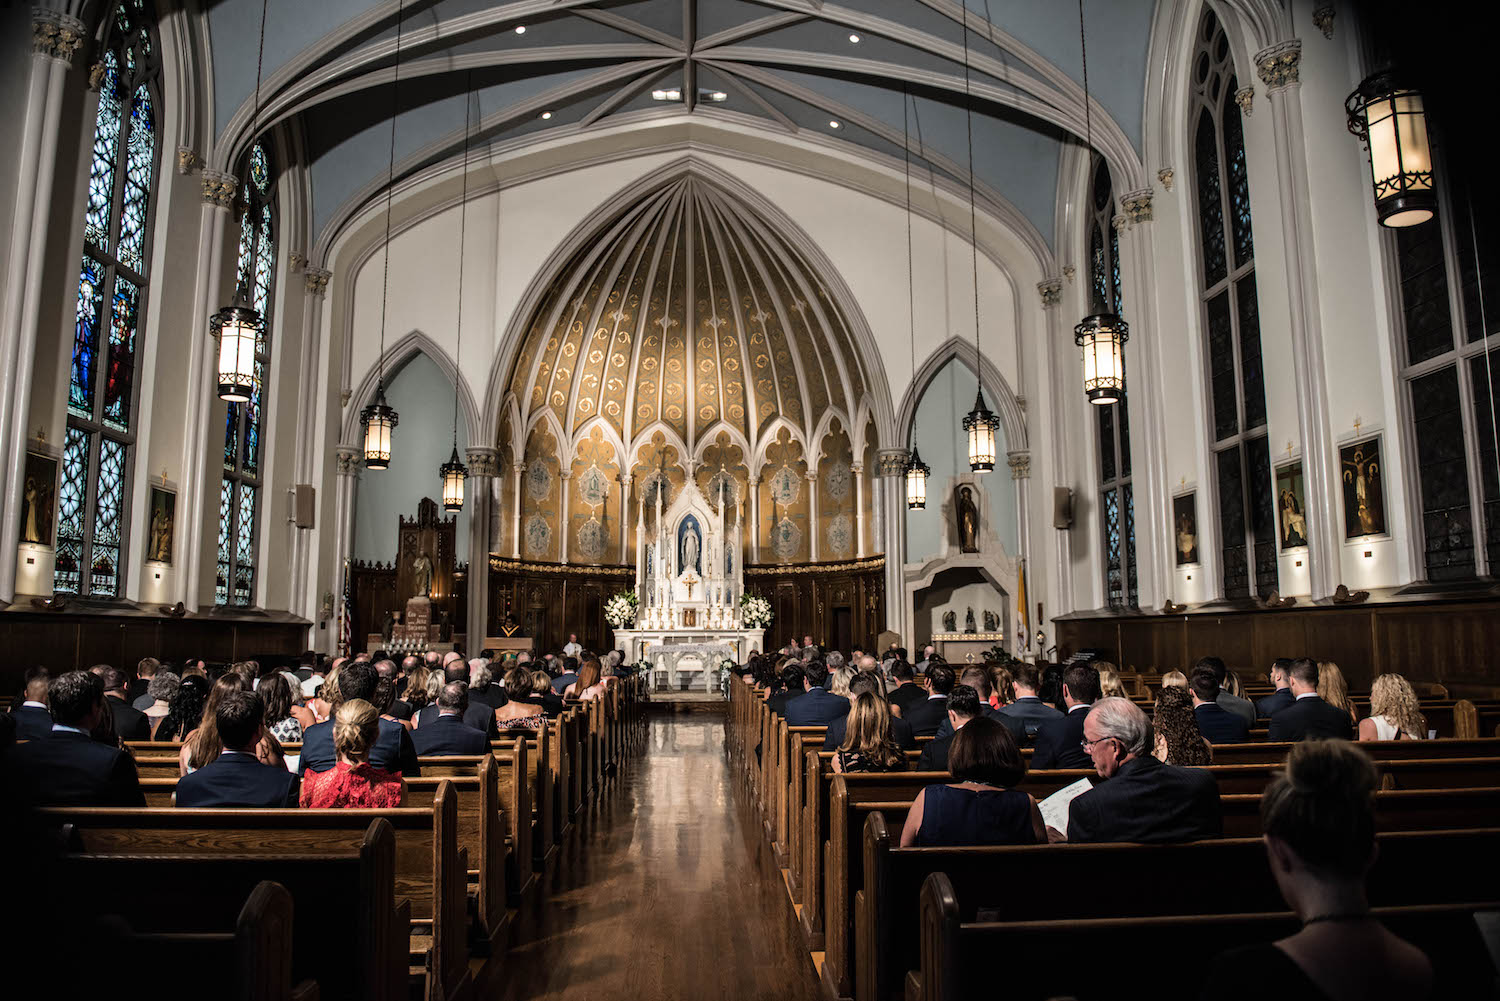 Washington DC Wedding - Sincerely Pete Events - Erin Tetterton Photography - Immaculate Conception Catholic Church